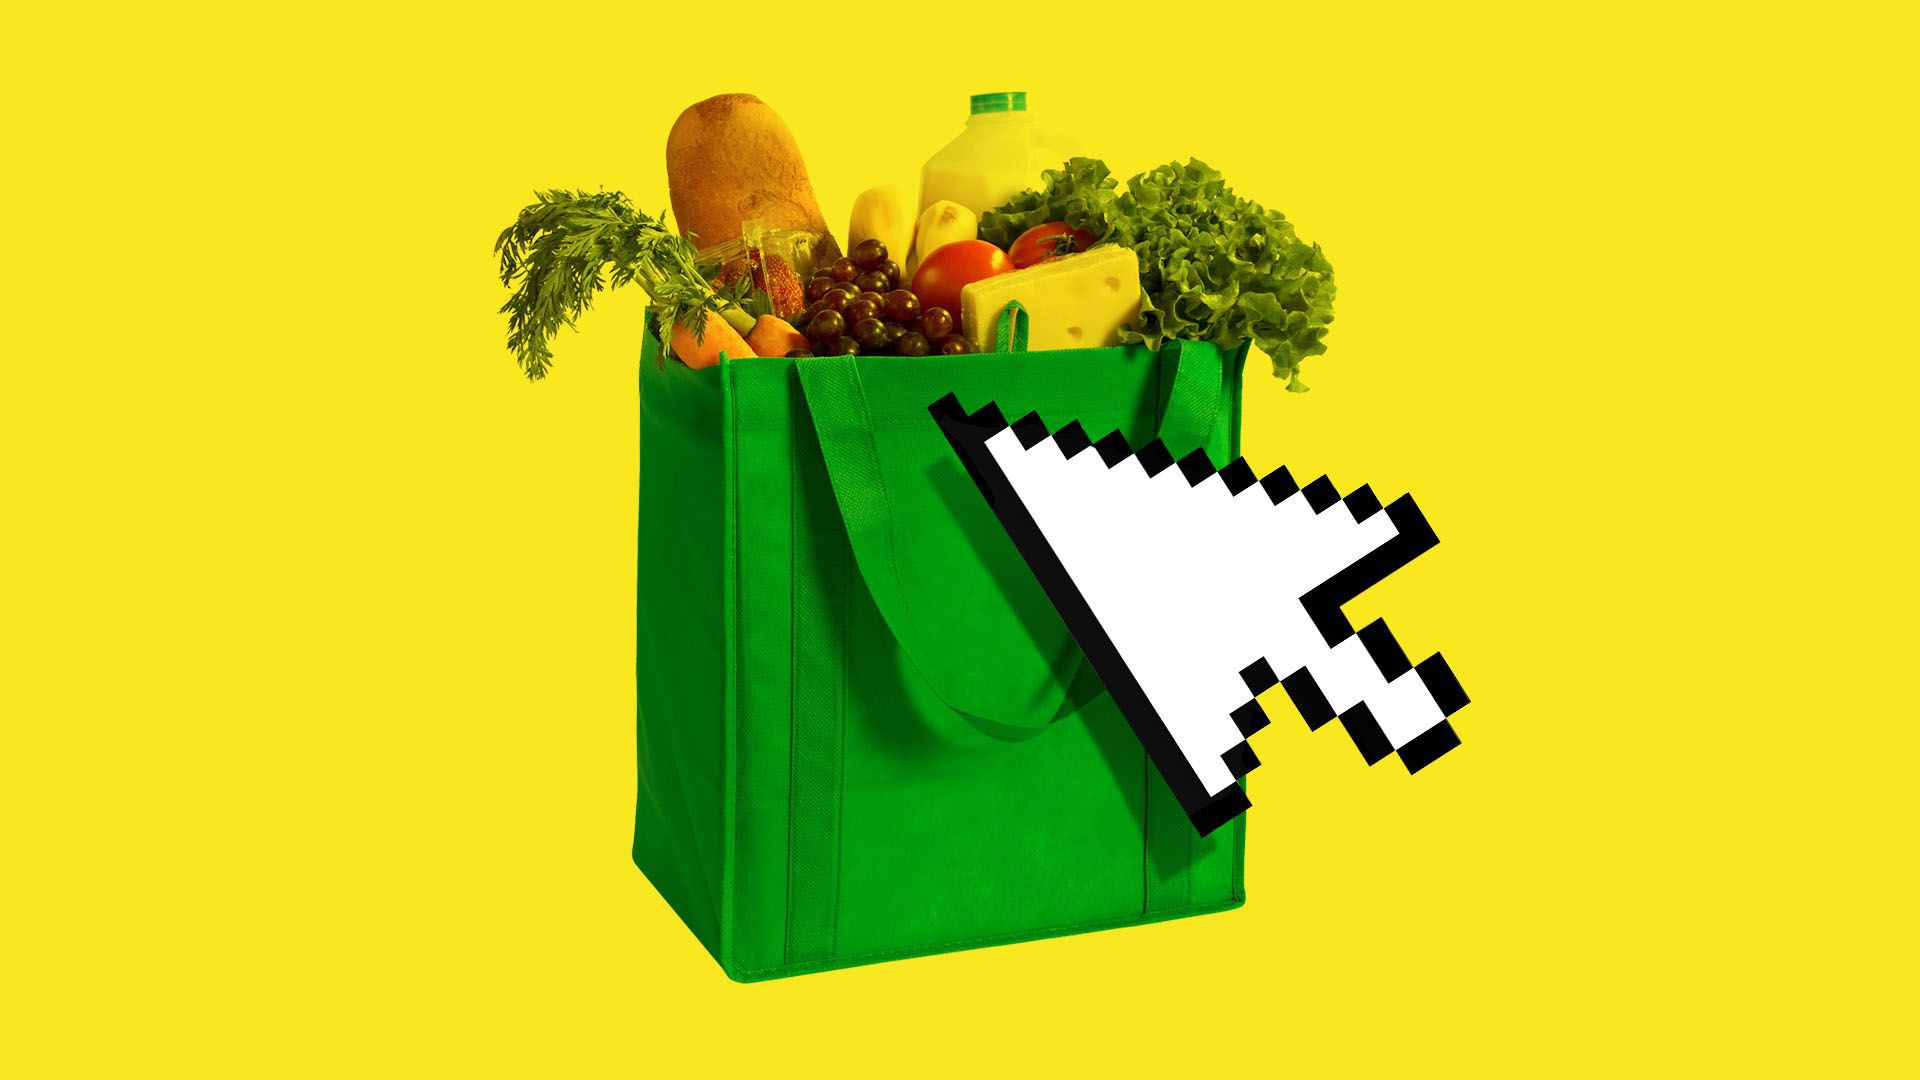 In this illustration, a giant computer mouse clicks on a reusable grocery bag.